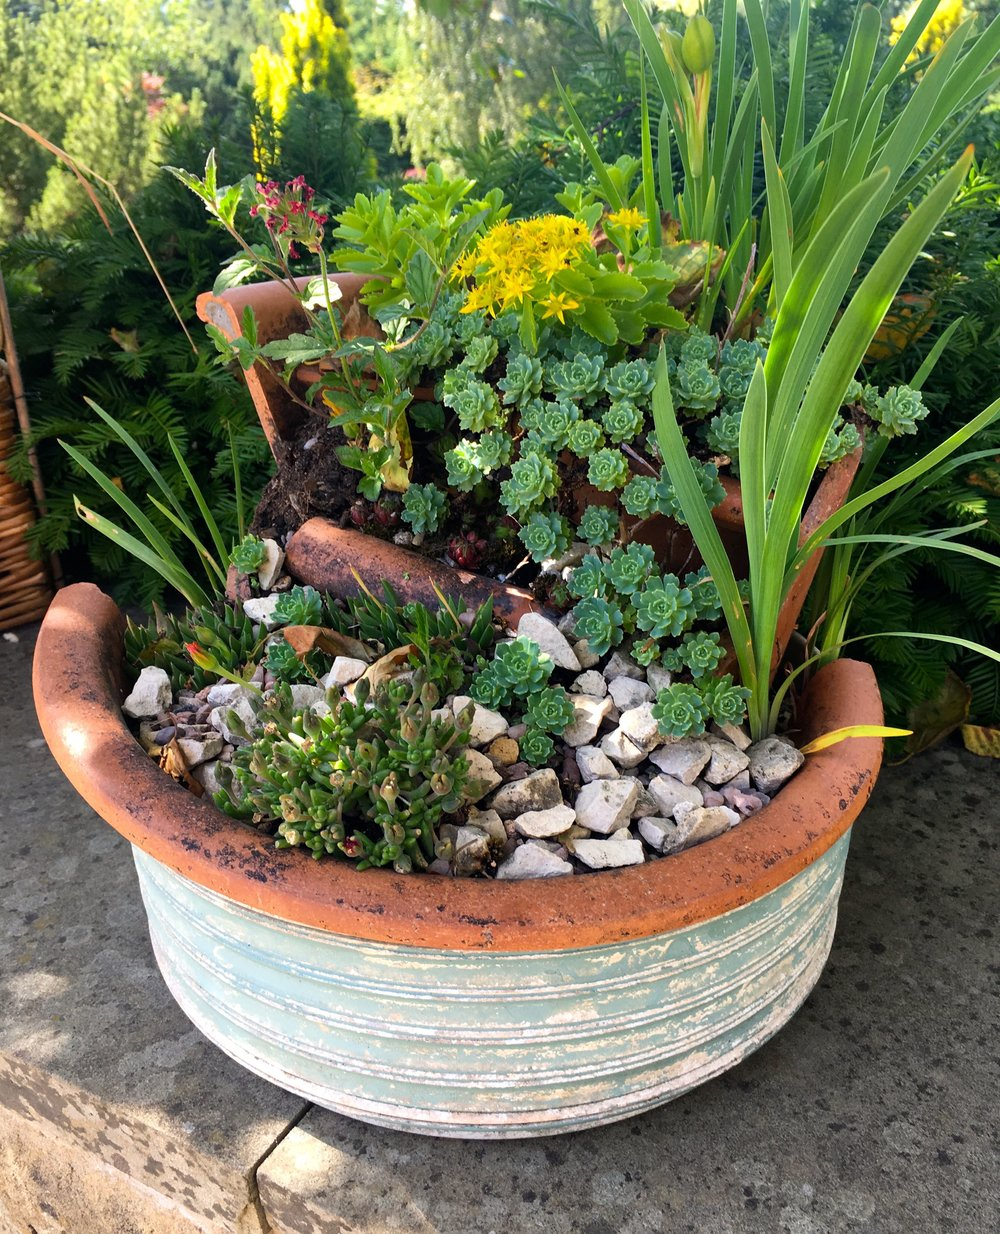 ceramic pots and a mini garden of plants at RHS Harlow Carr